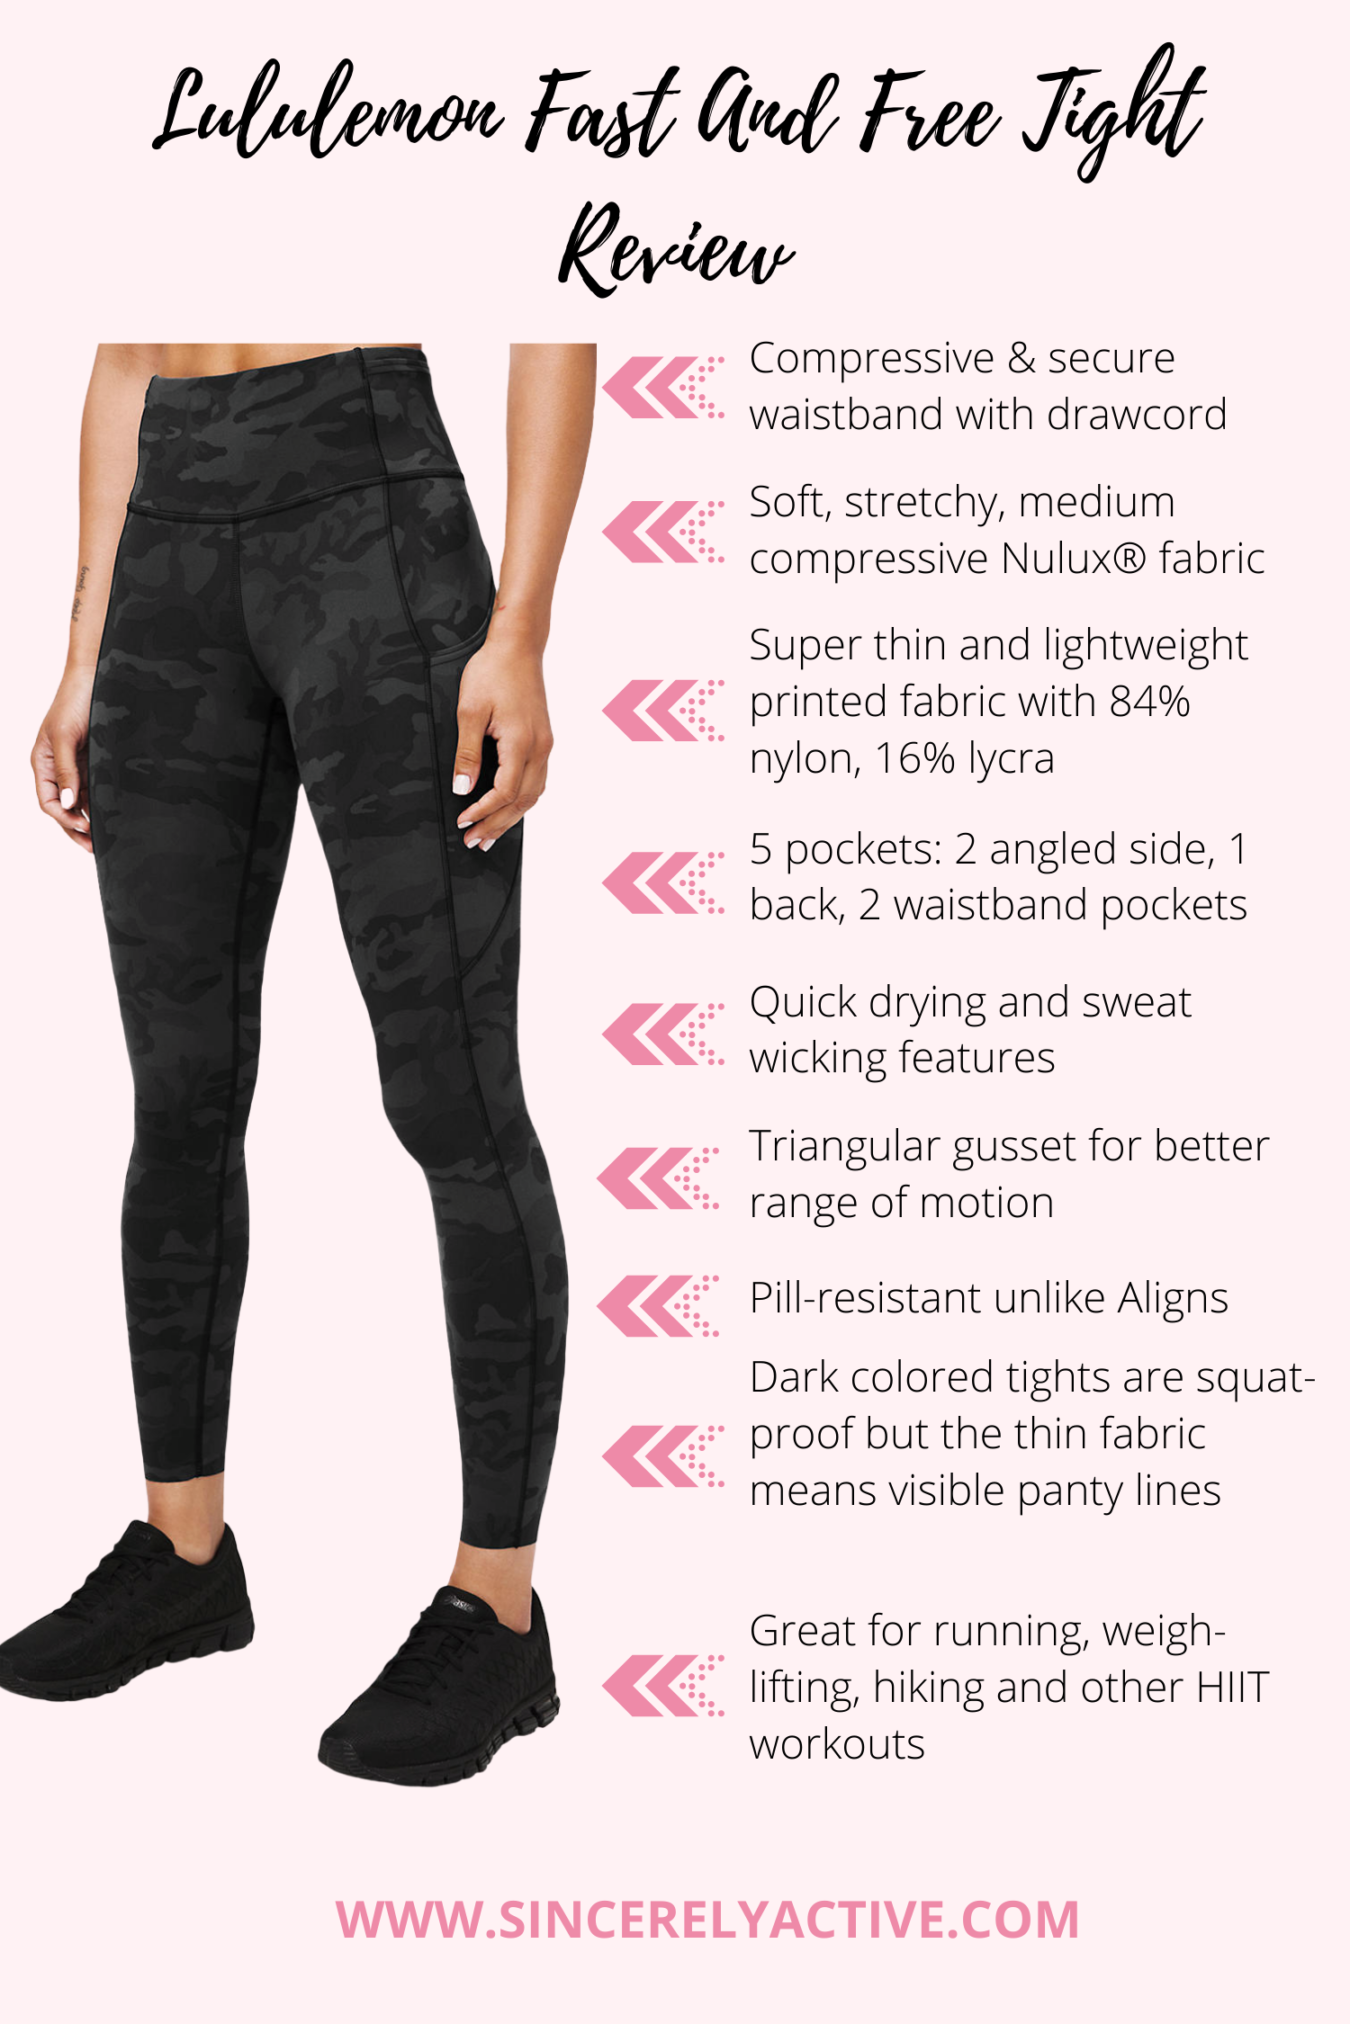 Lululemon fast and free tight review